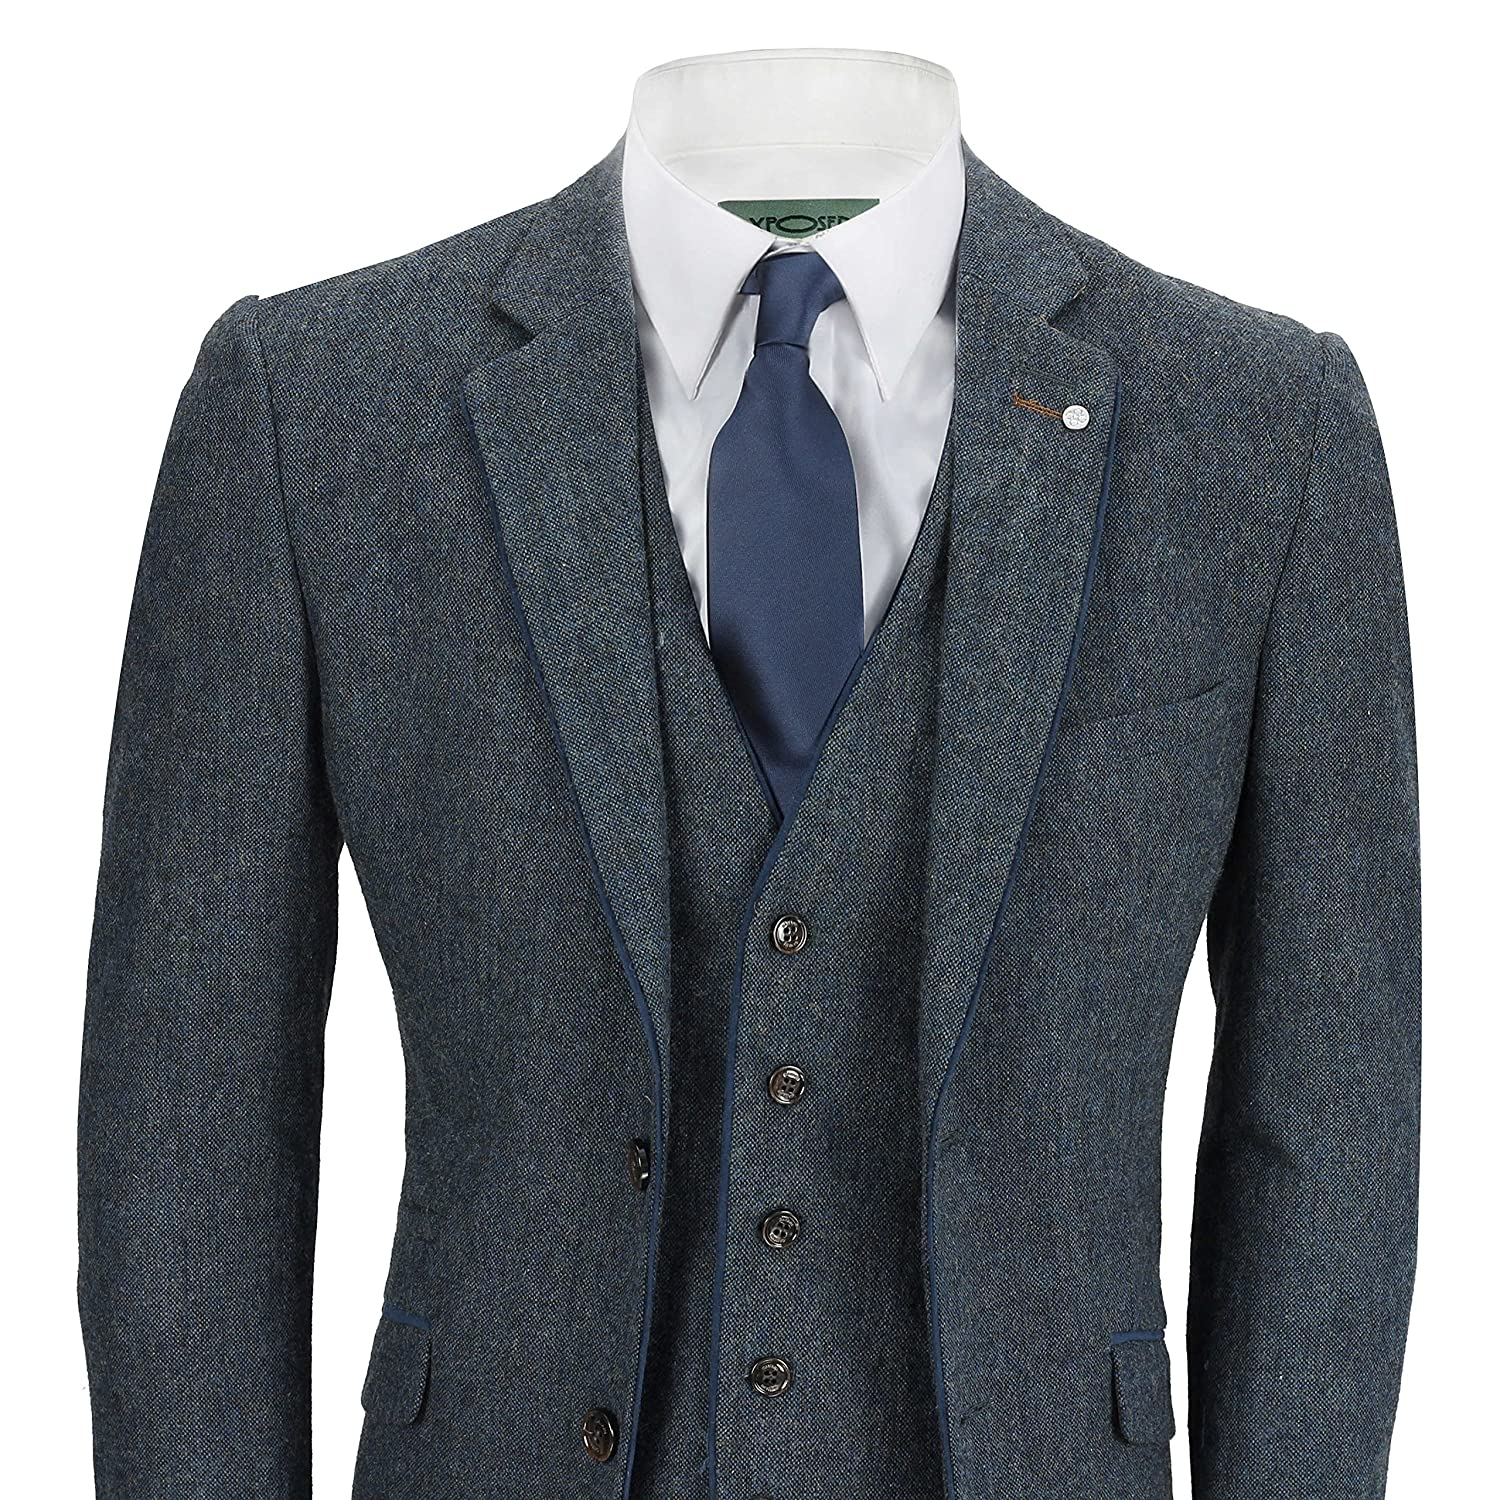 1920s Men's Suits History Cavani Mens Navy Blue 3 Piece Suit Wool Mix Vintage Herringbone Tweed Smart Formal Retro Tailored Fit $144.99 AT vintagedancer.com